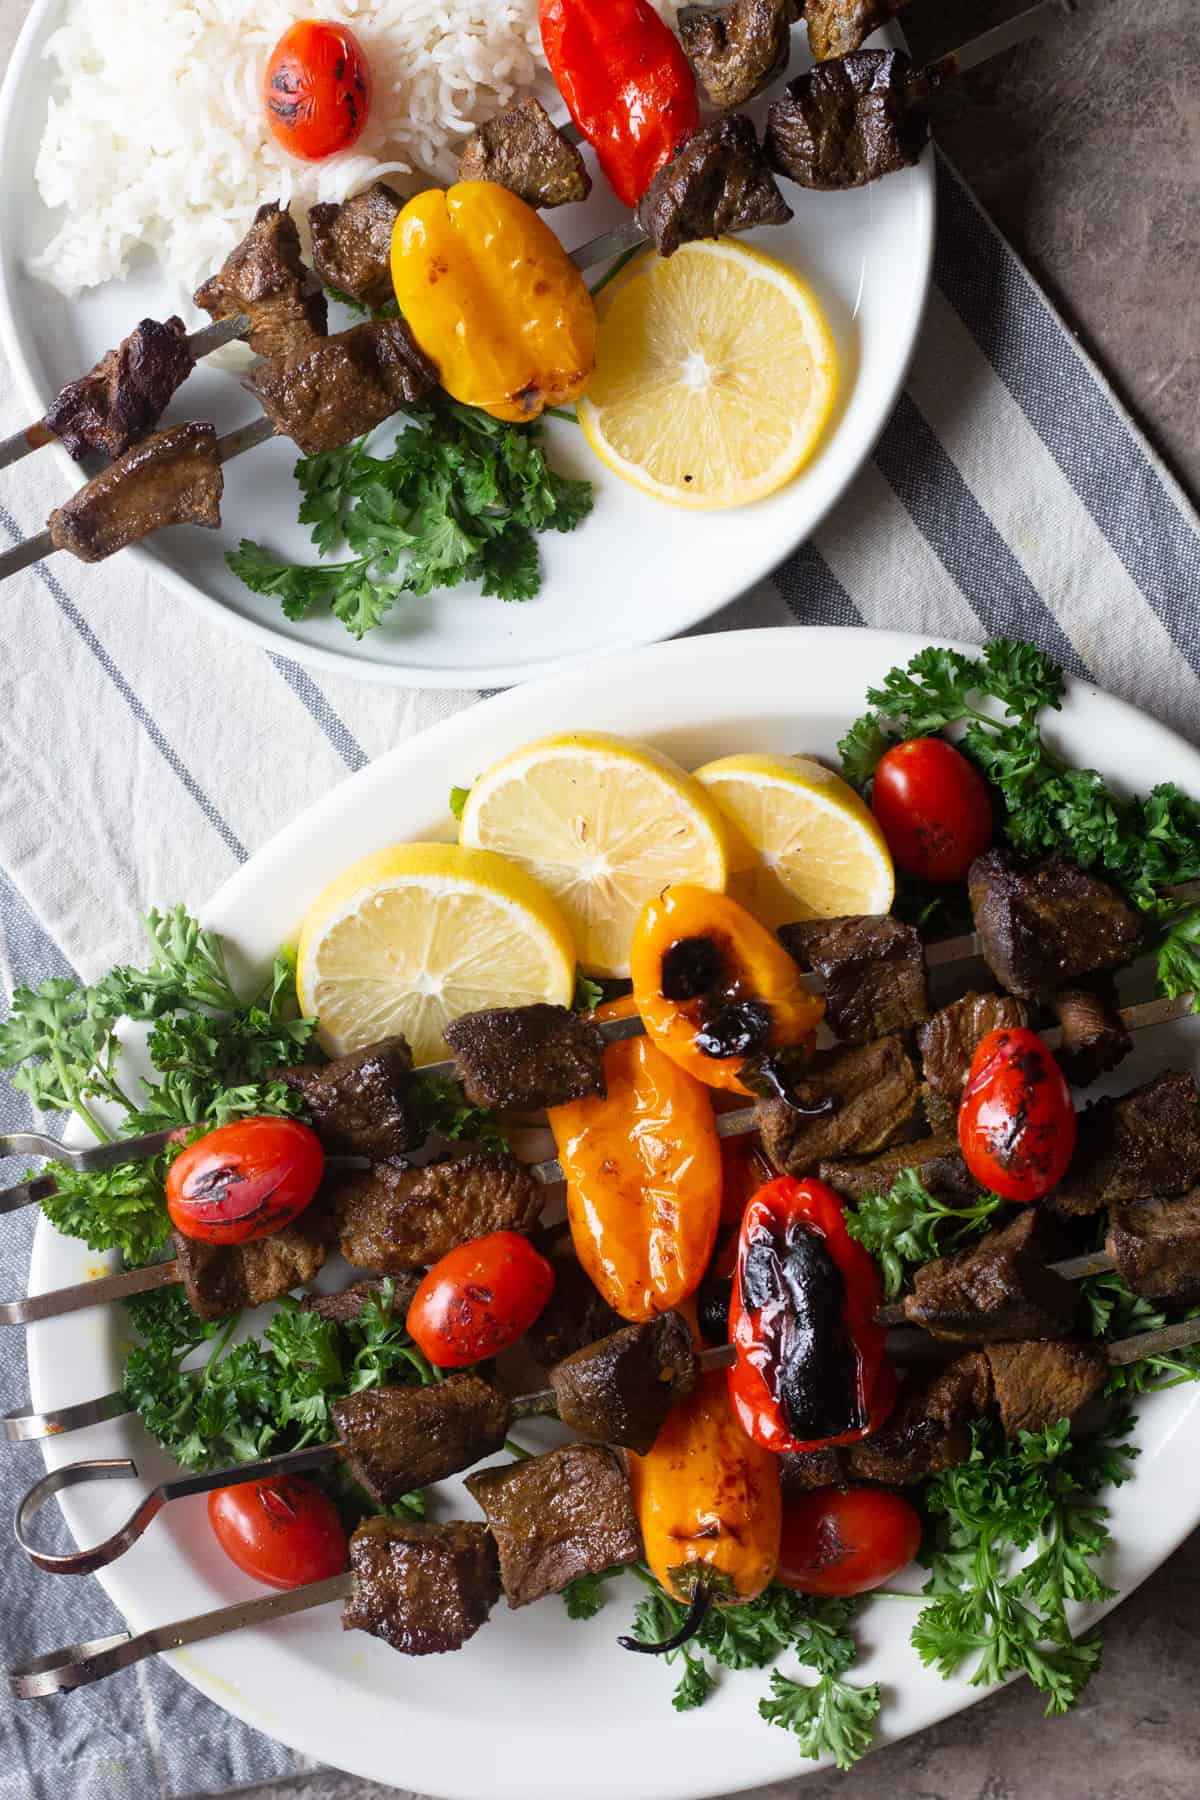 Beef Shish kabobs come together in a short time and you can serve them with different sides such as Mediterranean oven roasted vegetables or Mediterranean salad.